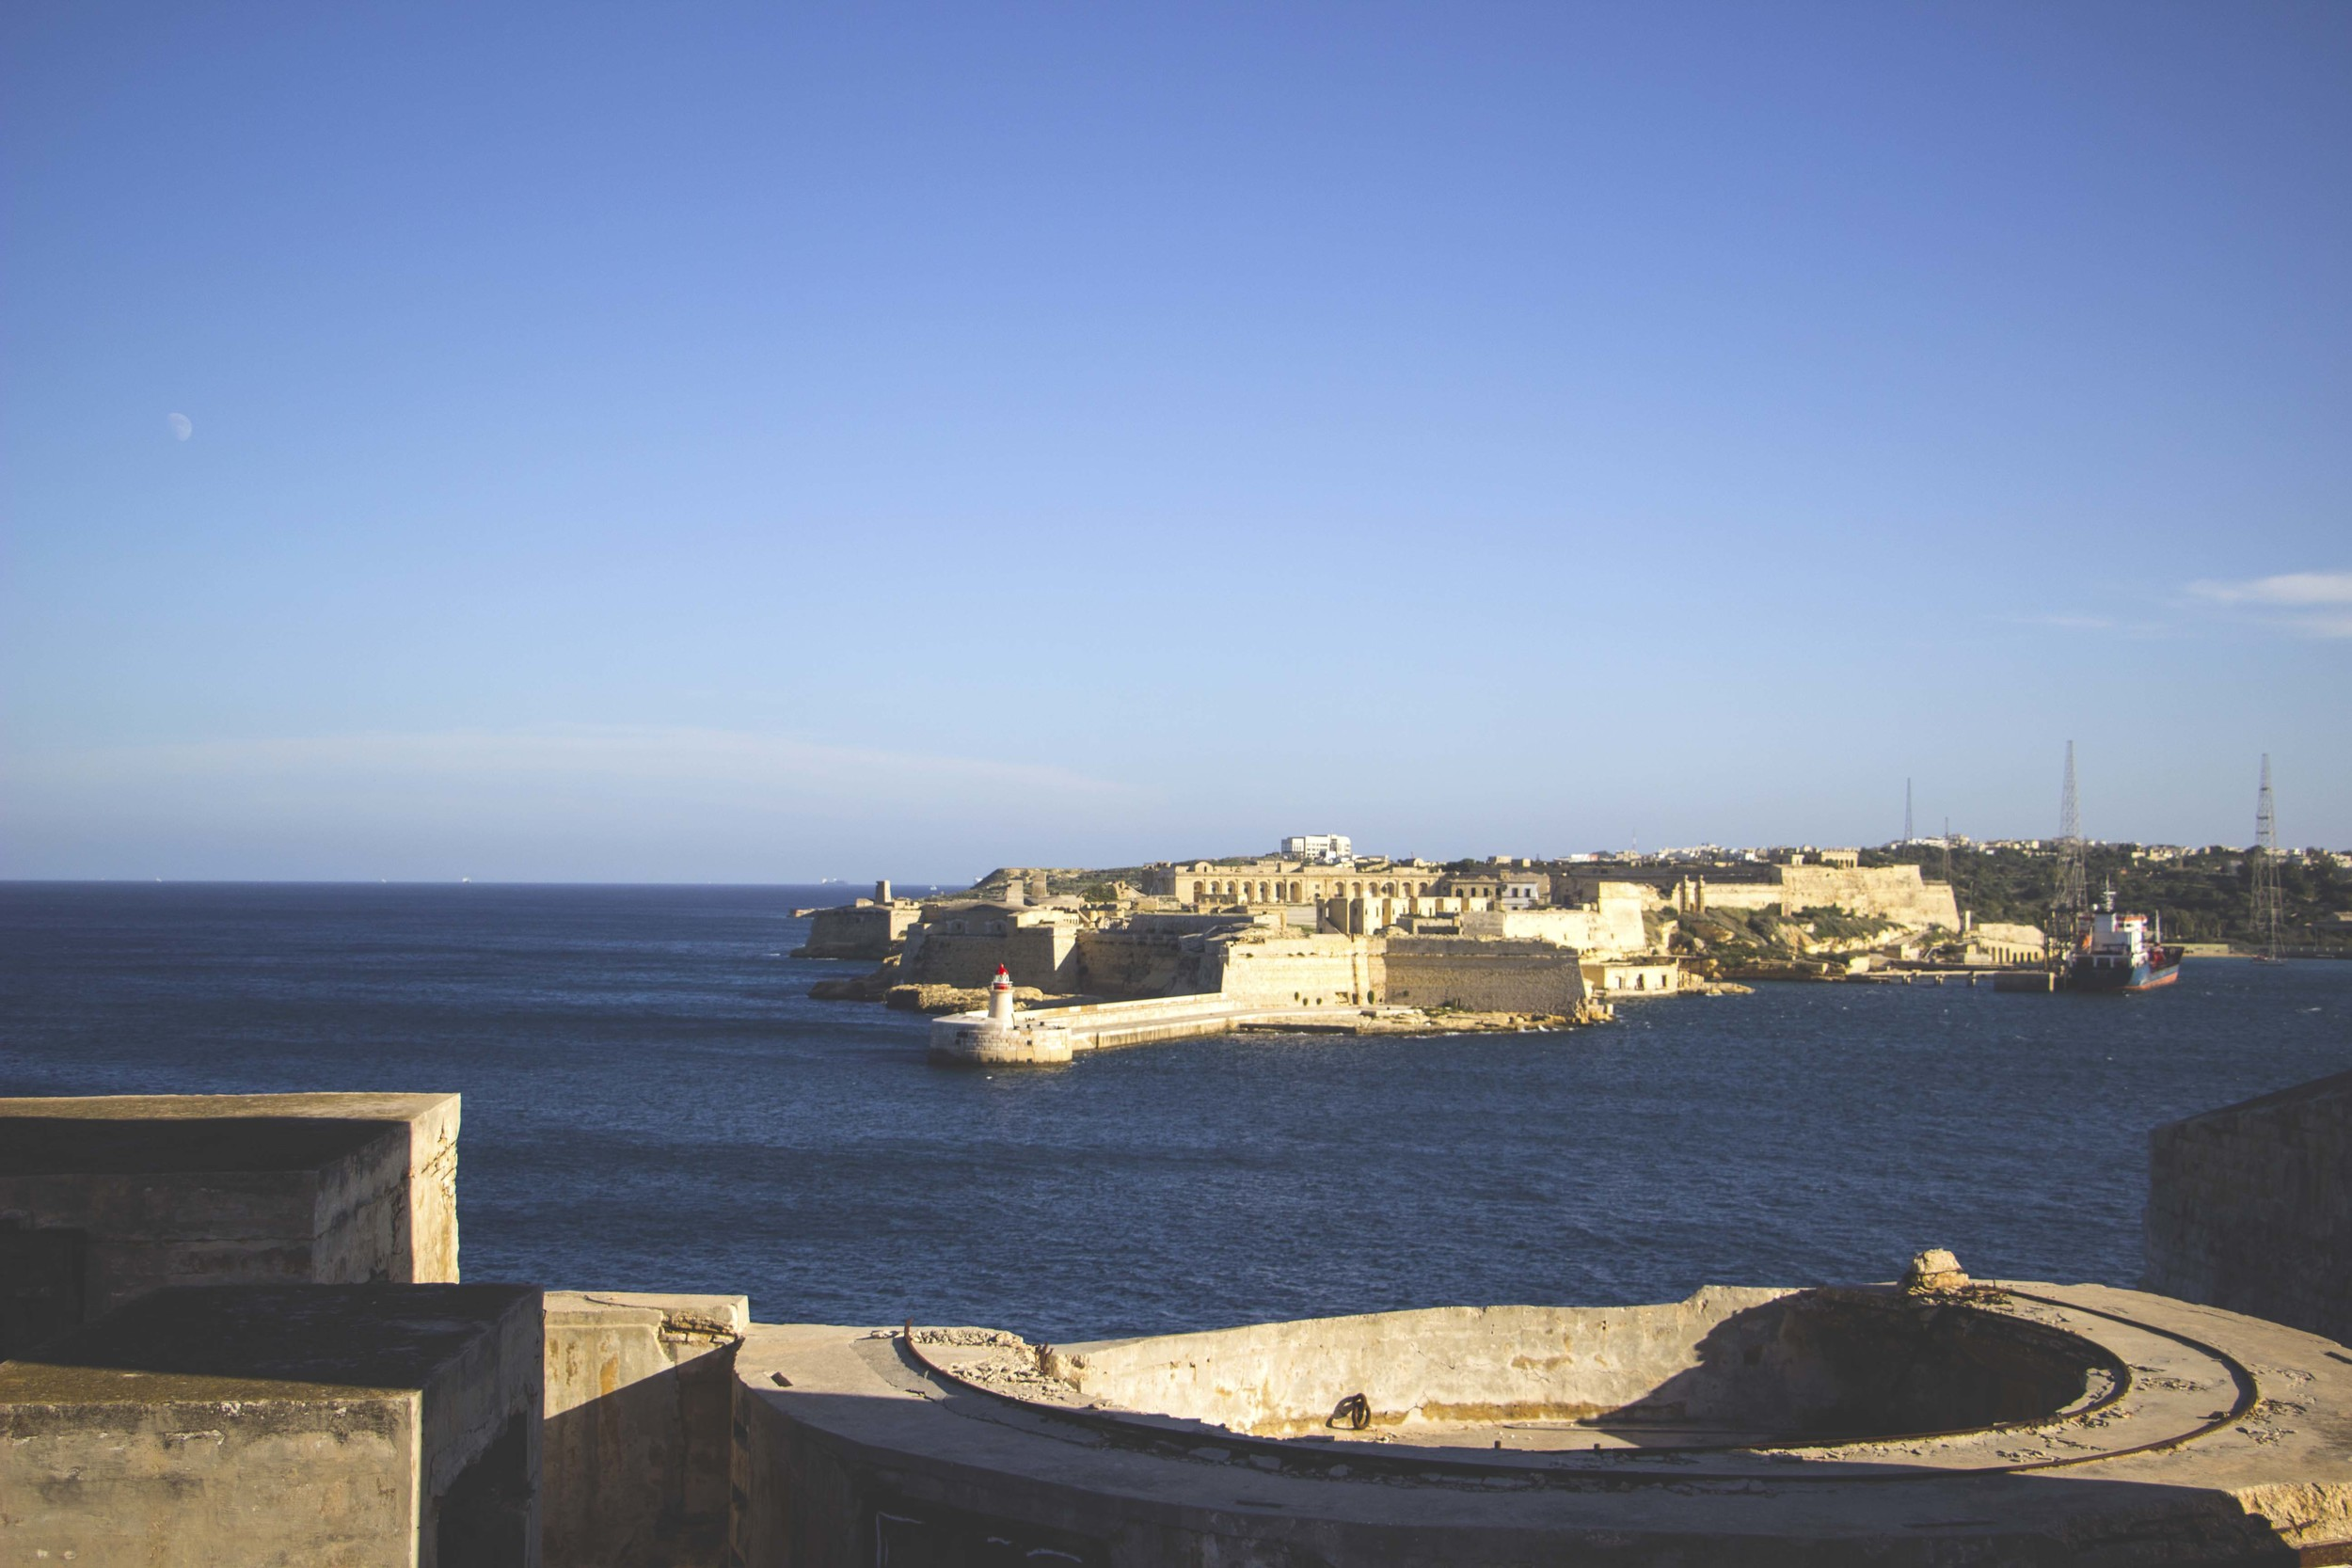 The view from the oceanside of Valletta, Malta.